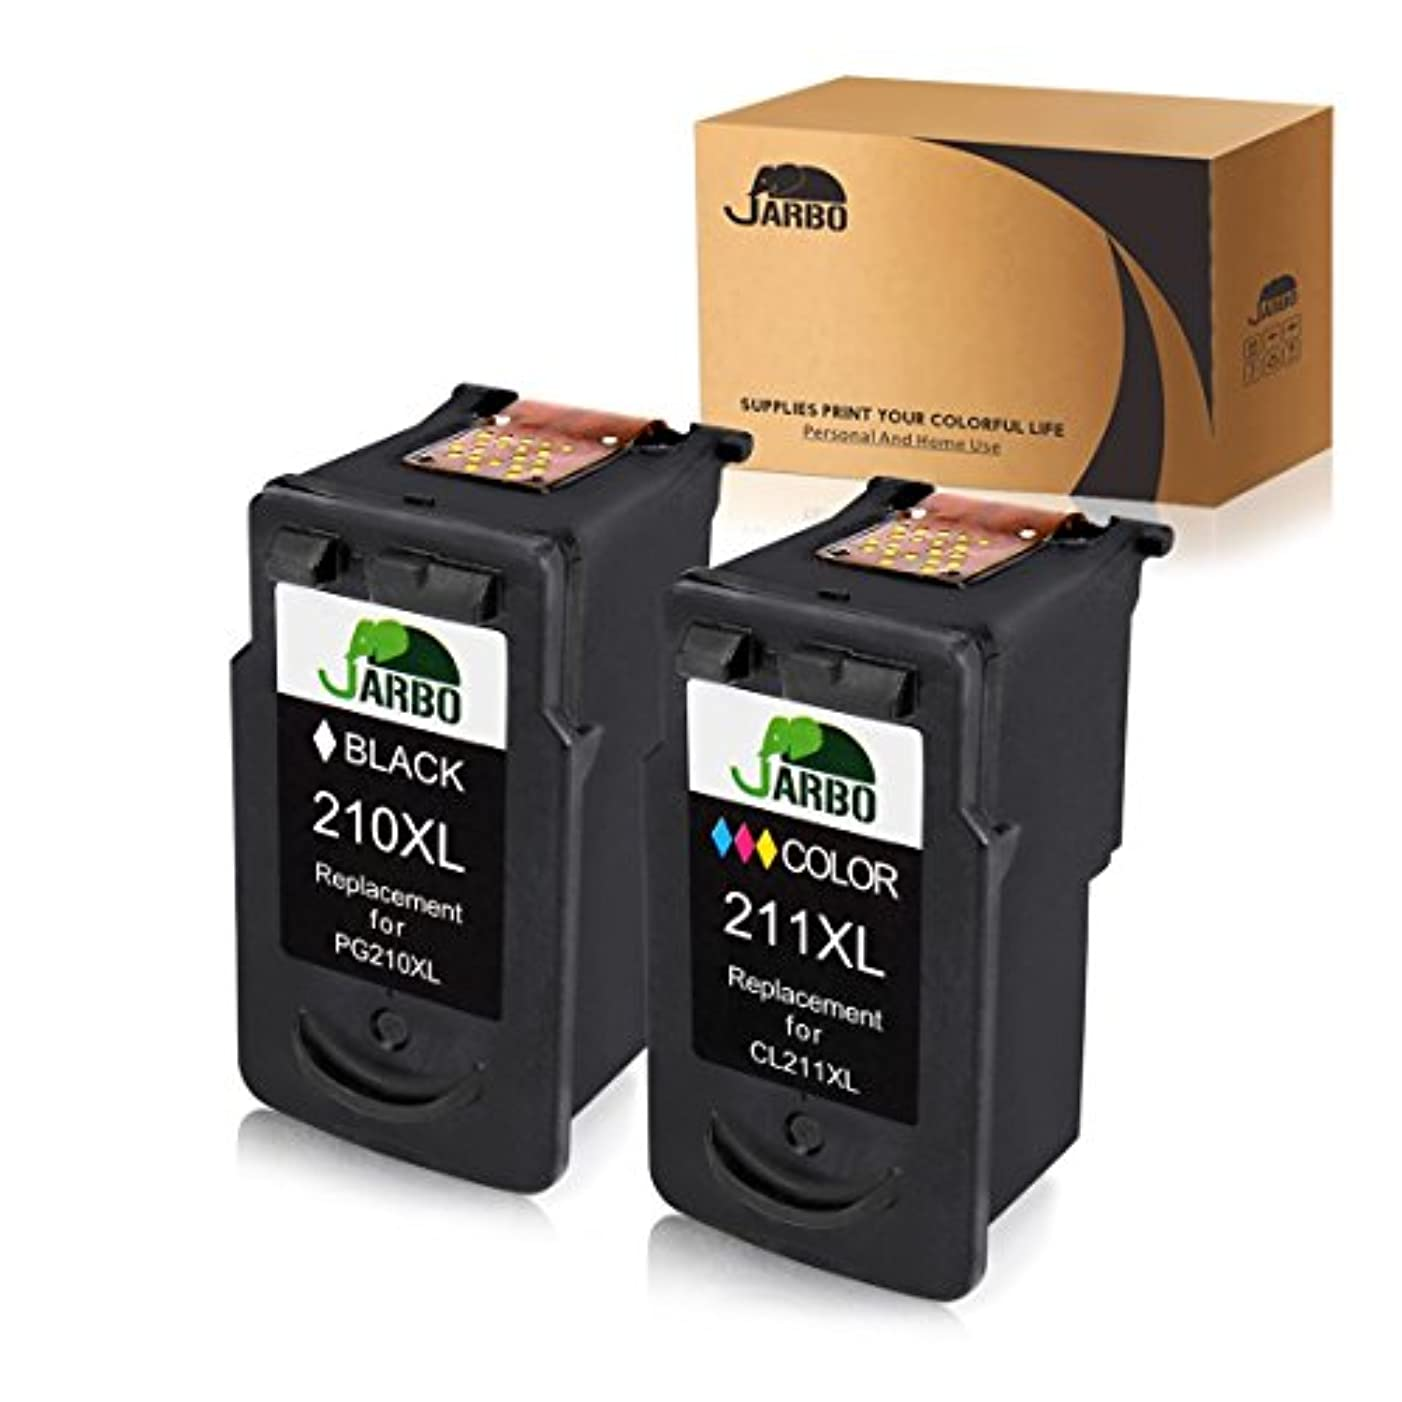 JARBO Remanufactured for Canon PG-210XL CL-211XL Ink Cartridges High Yield, 2 Pack (1 Black + 1 Tri-Color), Used in Canon PIXMA MP495 IP2700 MP490 MP480 MP280 MX330 MX340 XM410 MX420 MX350 Printer